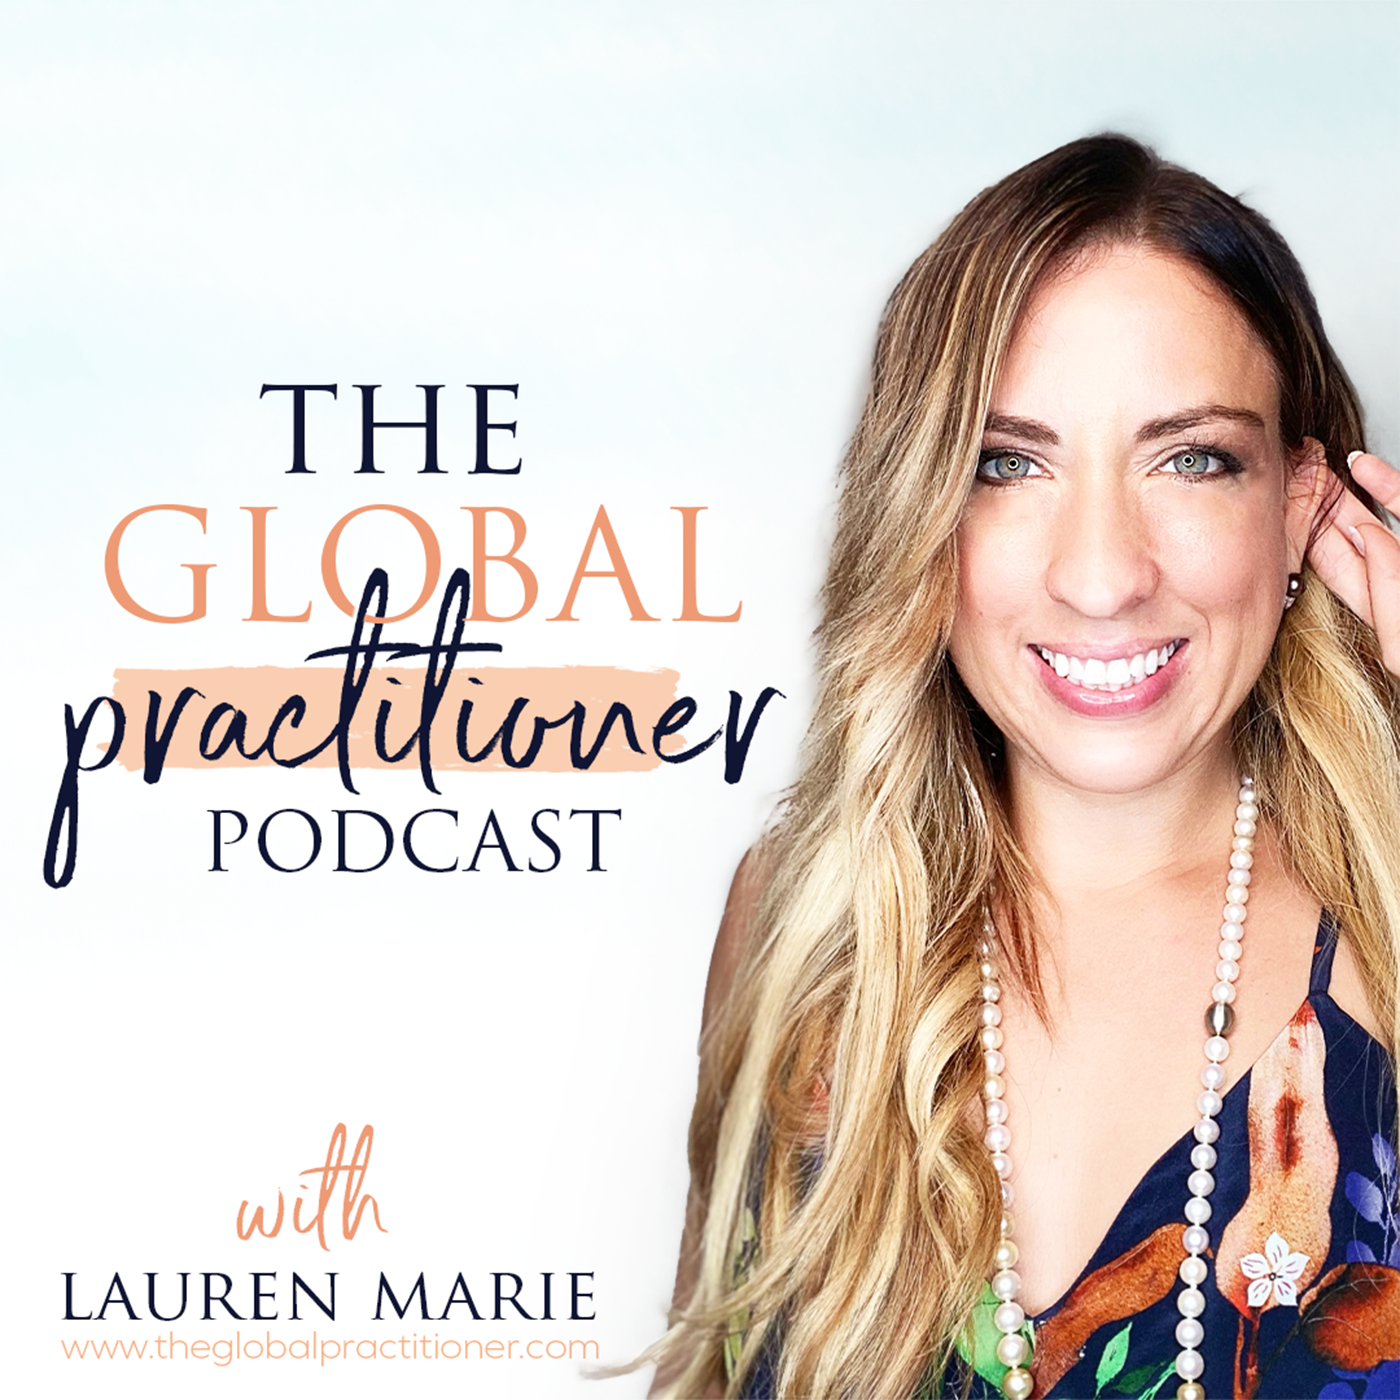 The Global Practitioner